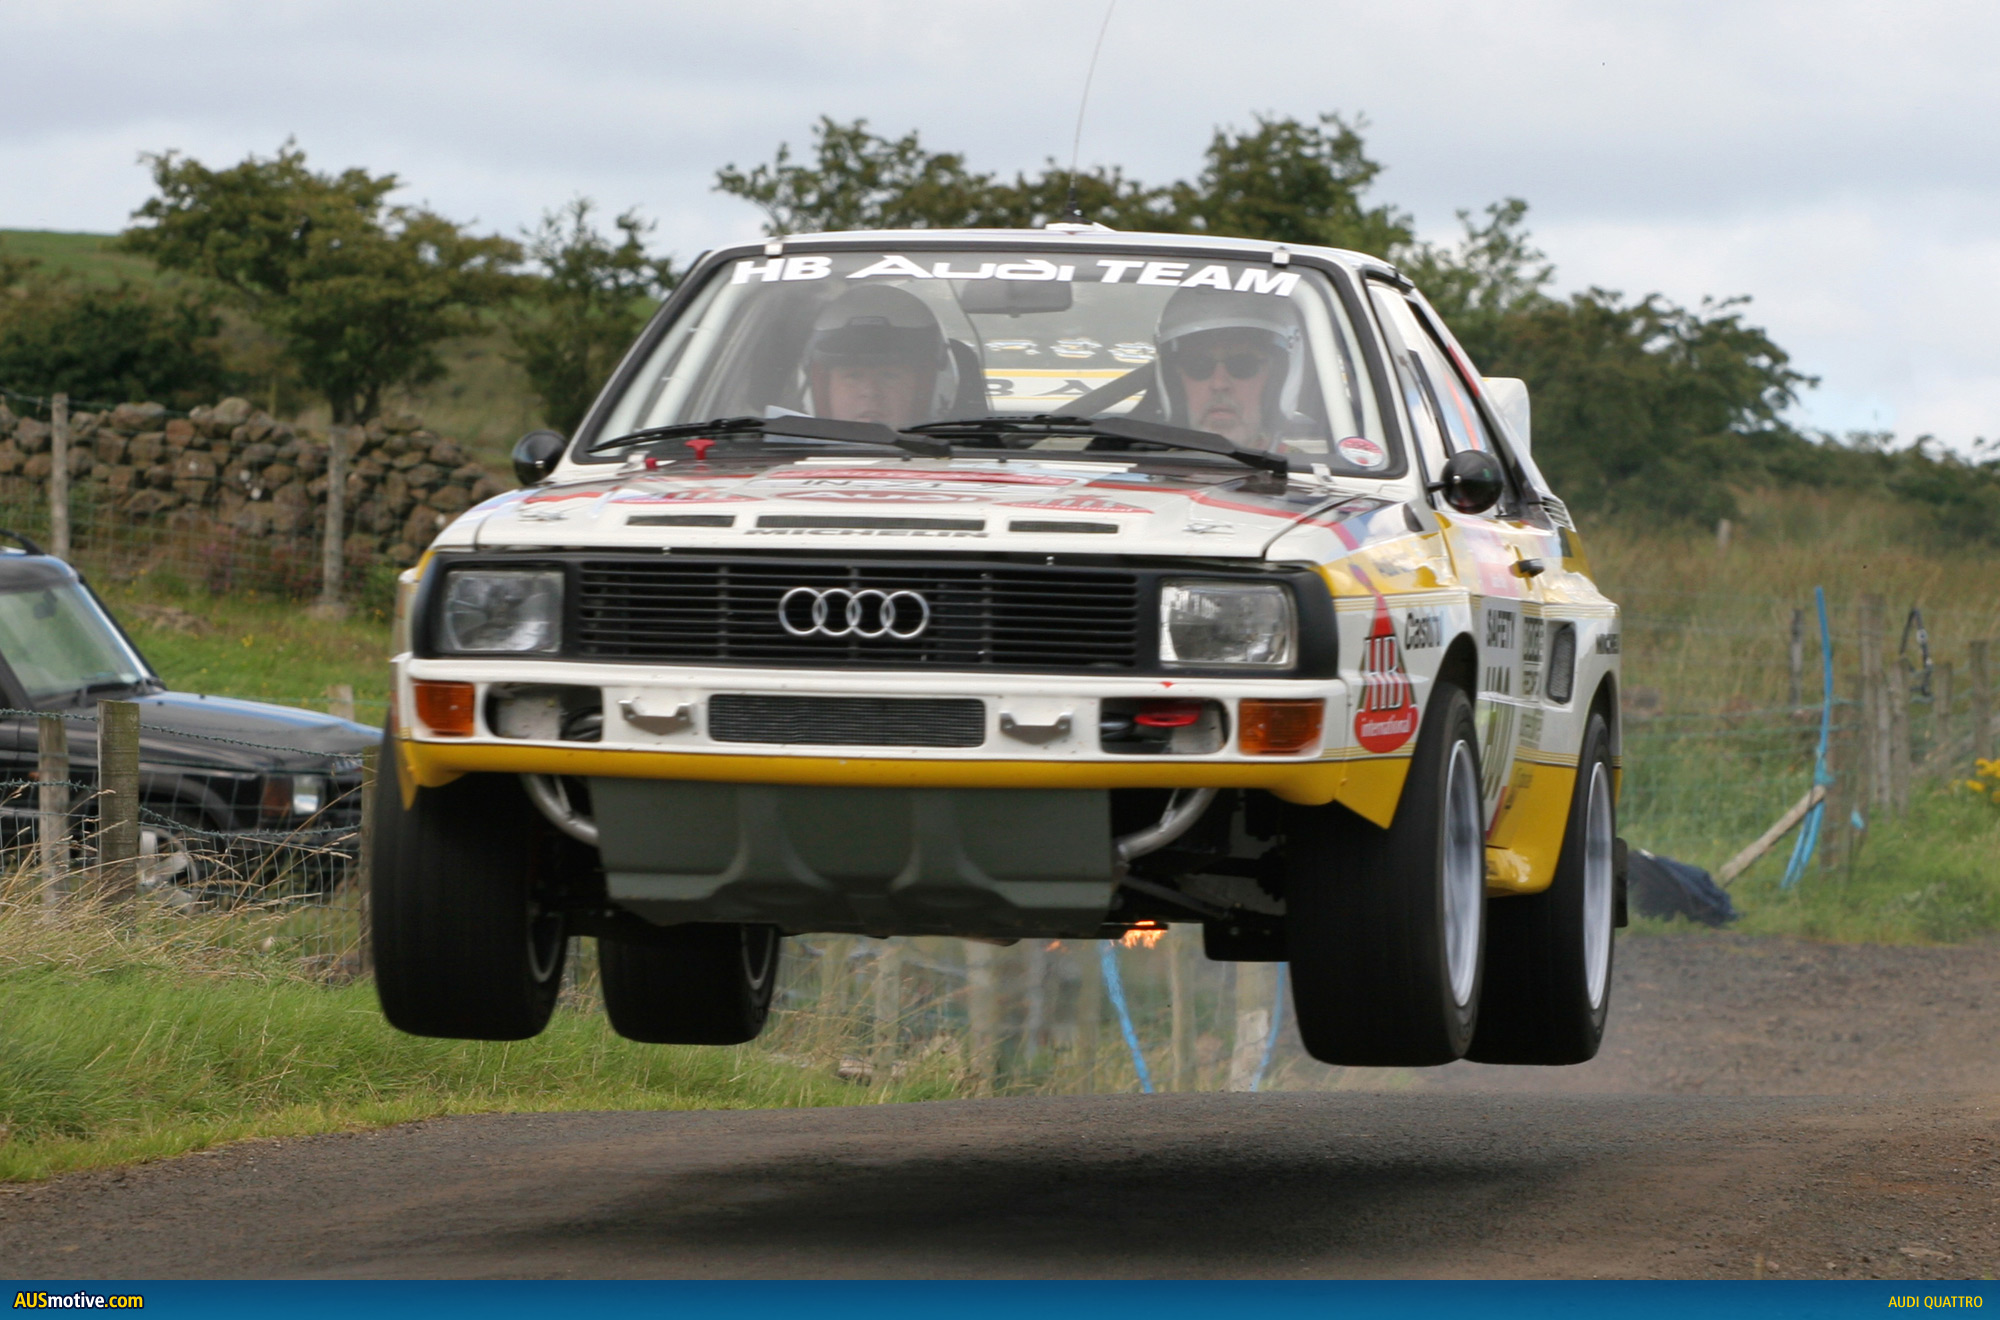 Group B Rally Car Wallpaper Images Pictures   Becuo 2000x1320